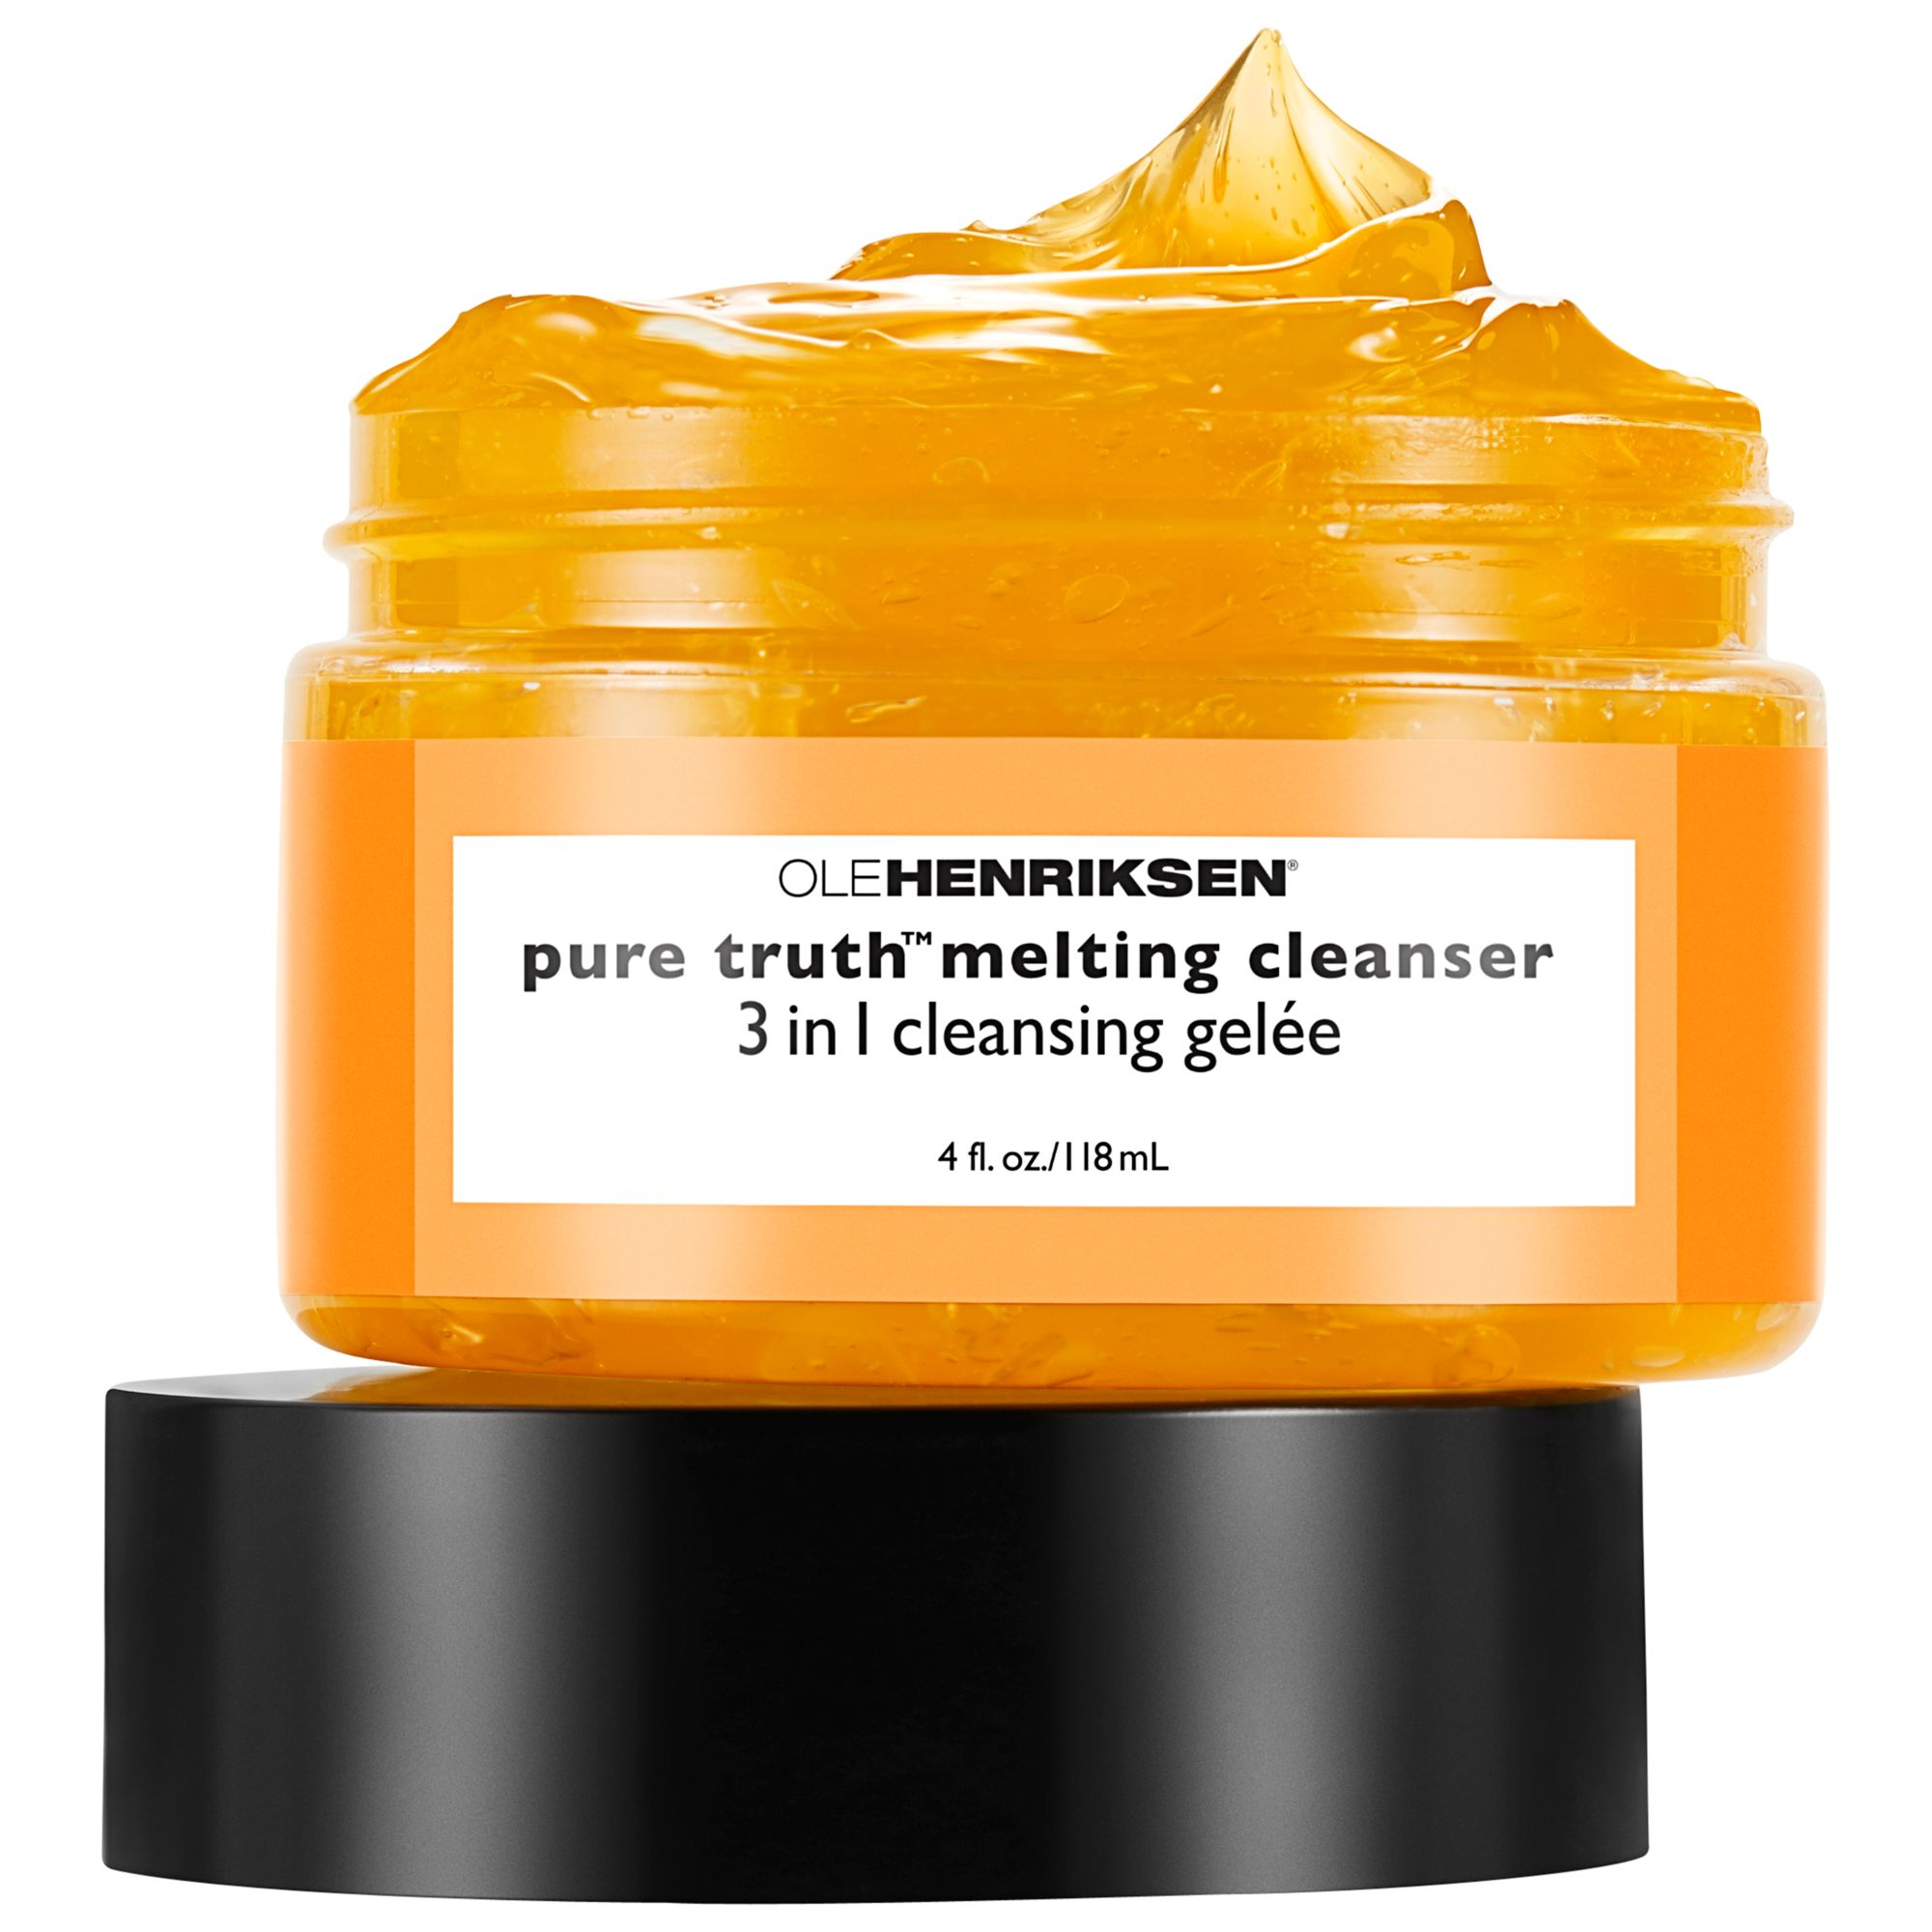 OLEHENRIKSEN OLEHENRIKSEN Pure Truth Melting Cleanser, 118ml